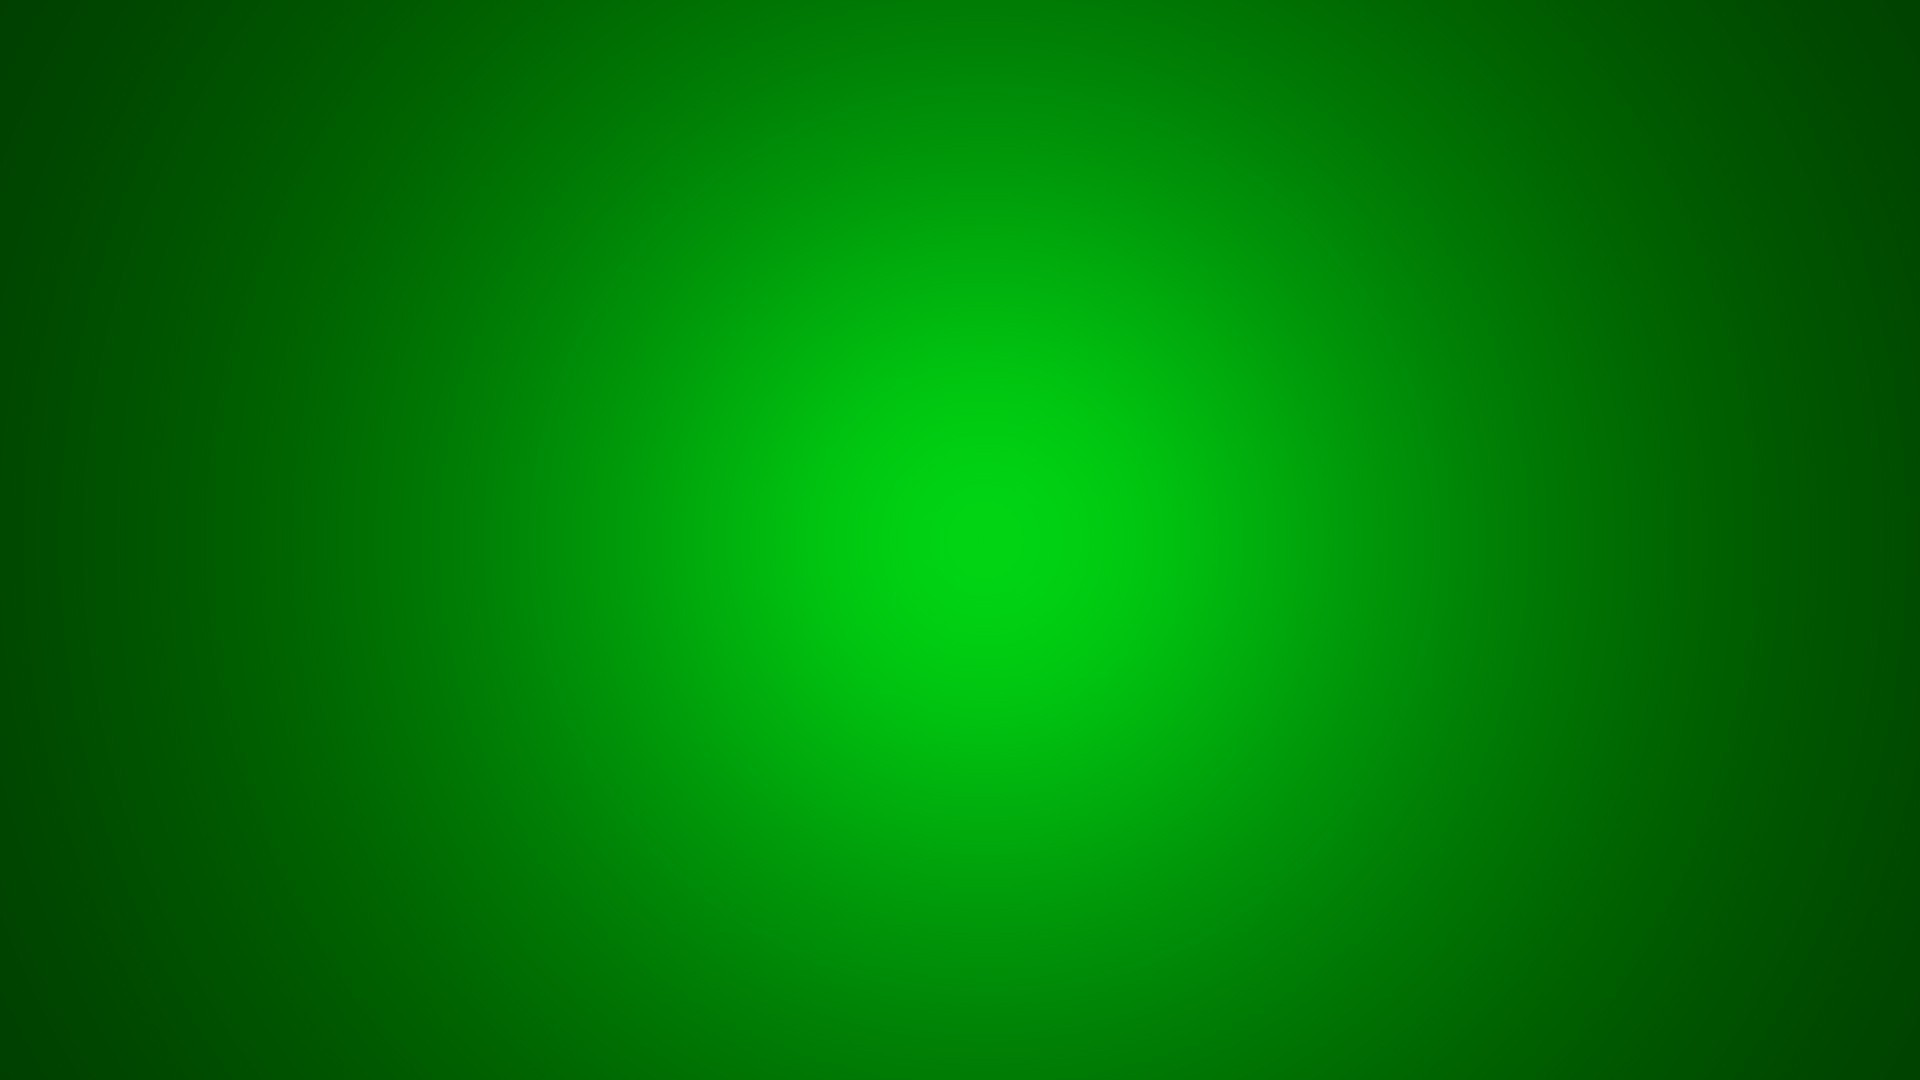 1920x1200 Bright Green Solid Color Background |Bright Green Color Background